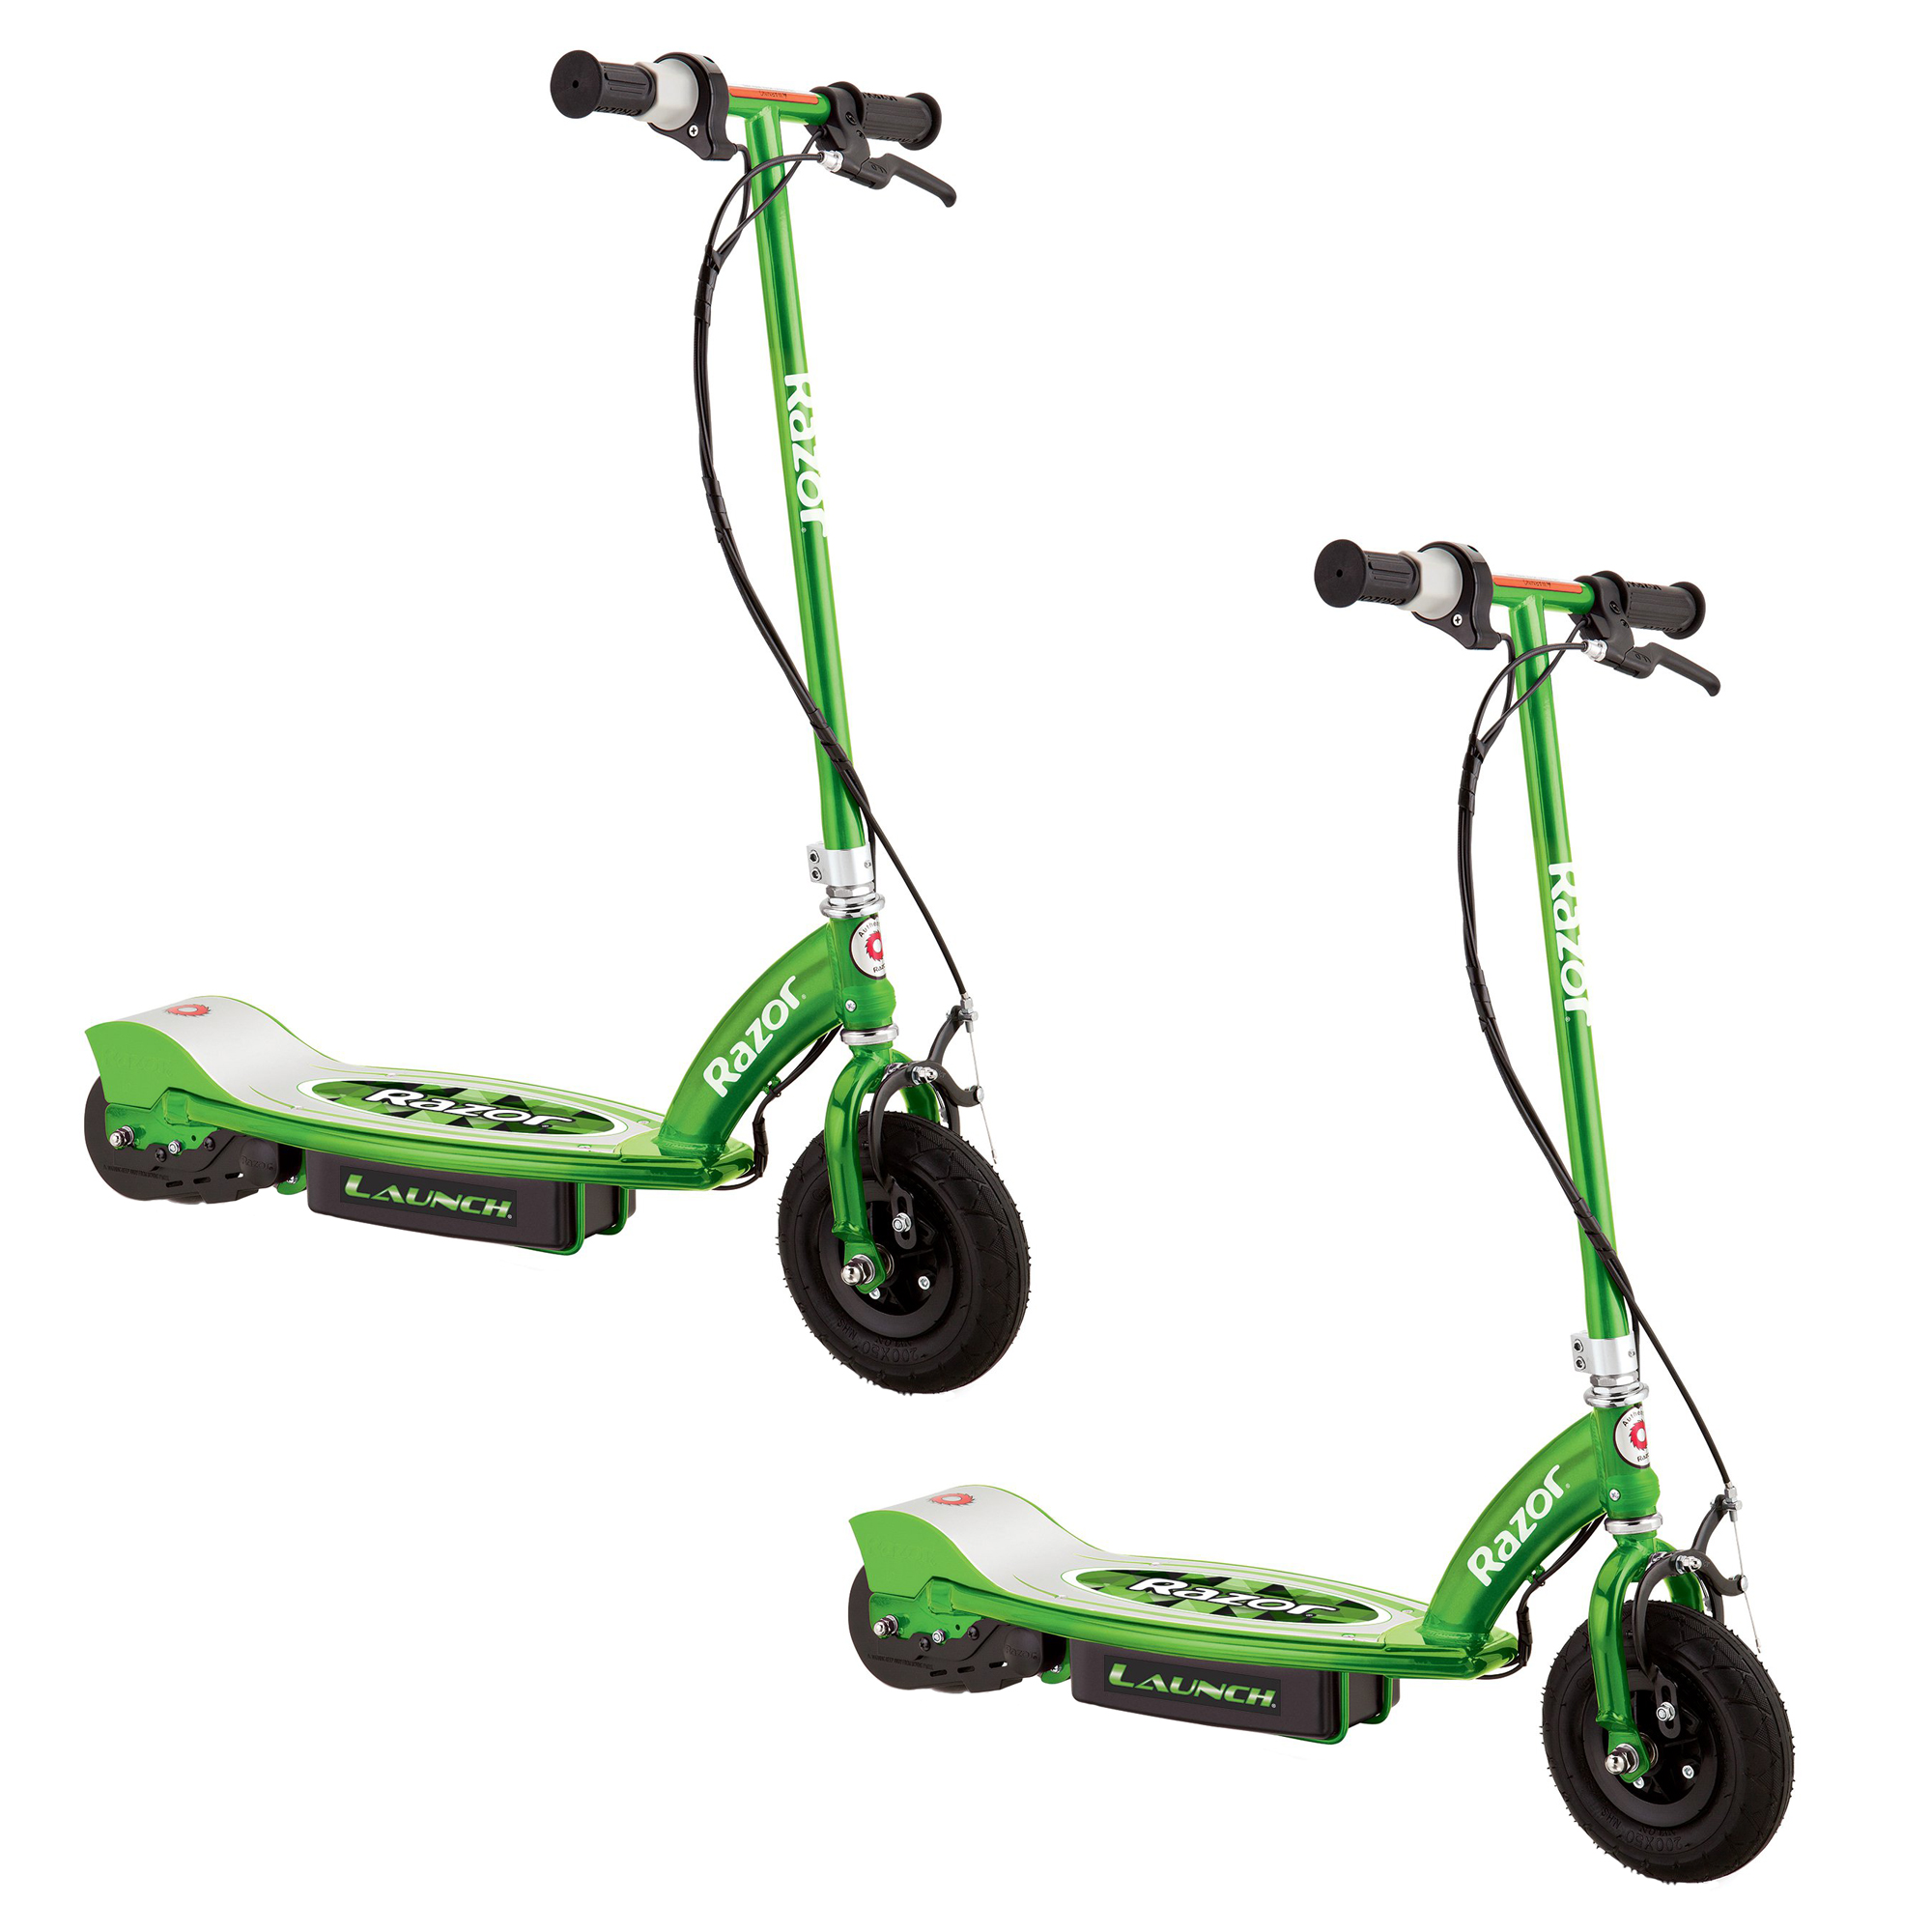 Razor Launch Motorized Rechargeable Electric Power Kids Scooter, Green (2 Pack) by Razor